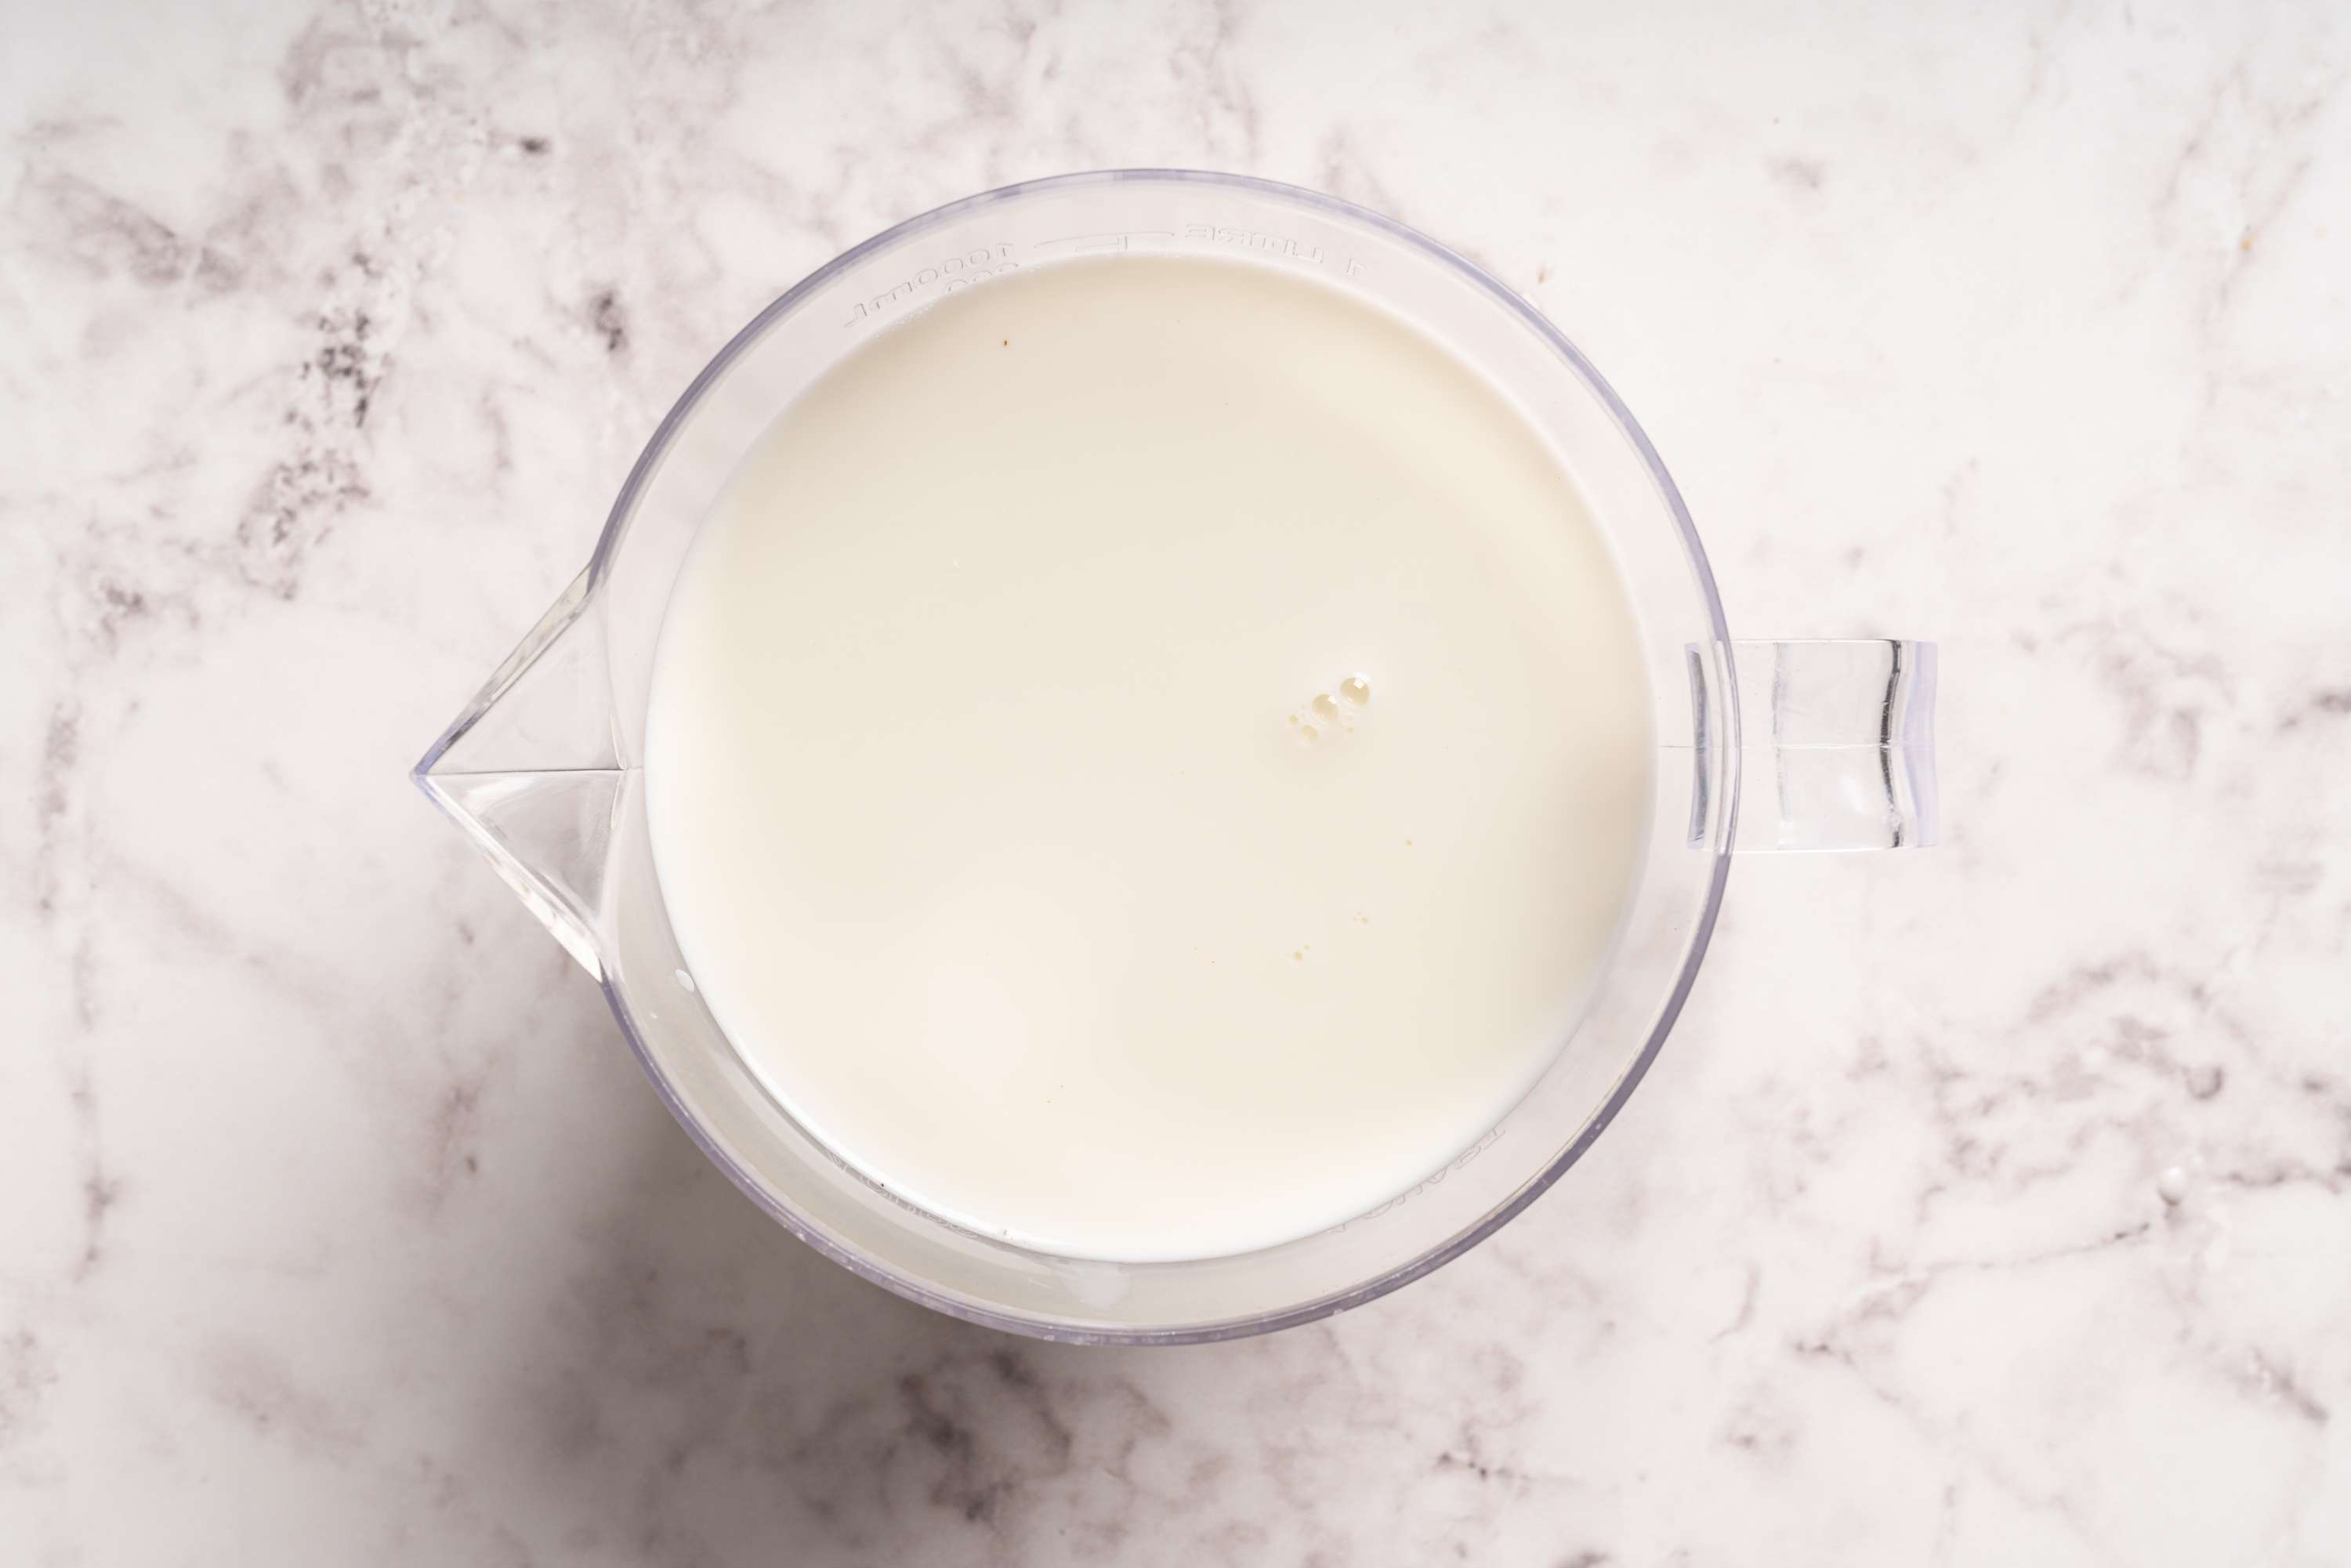 coconut water and milk in a measuring cup